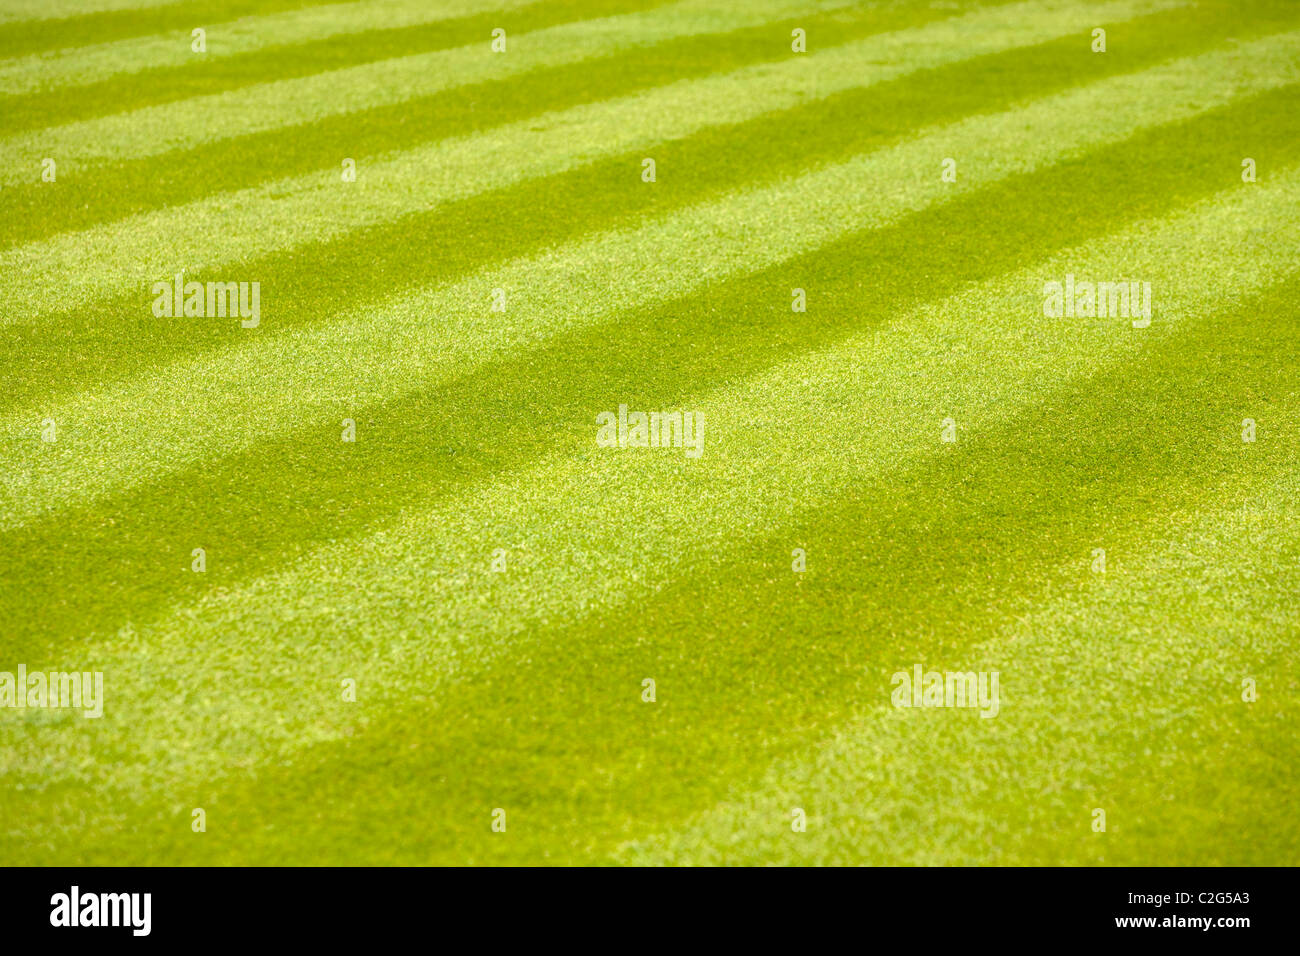 Lawn Stripes and Striped grass on a well defined lawn. - Stock Image